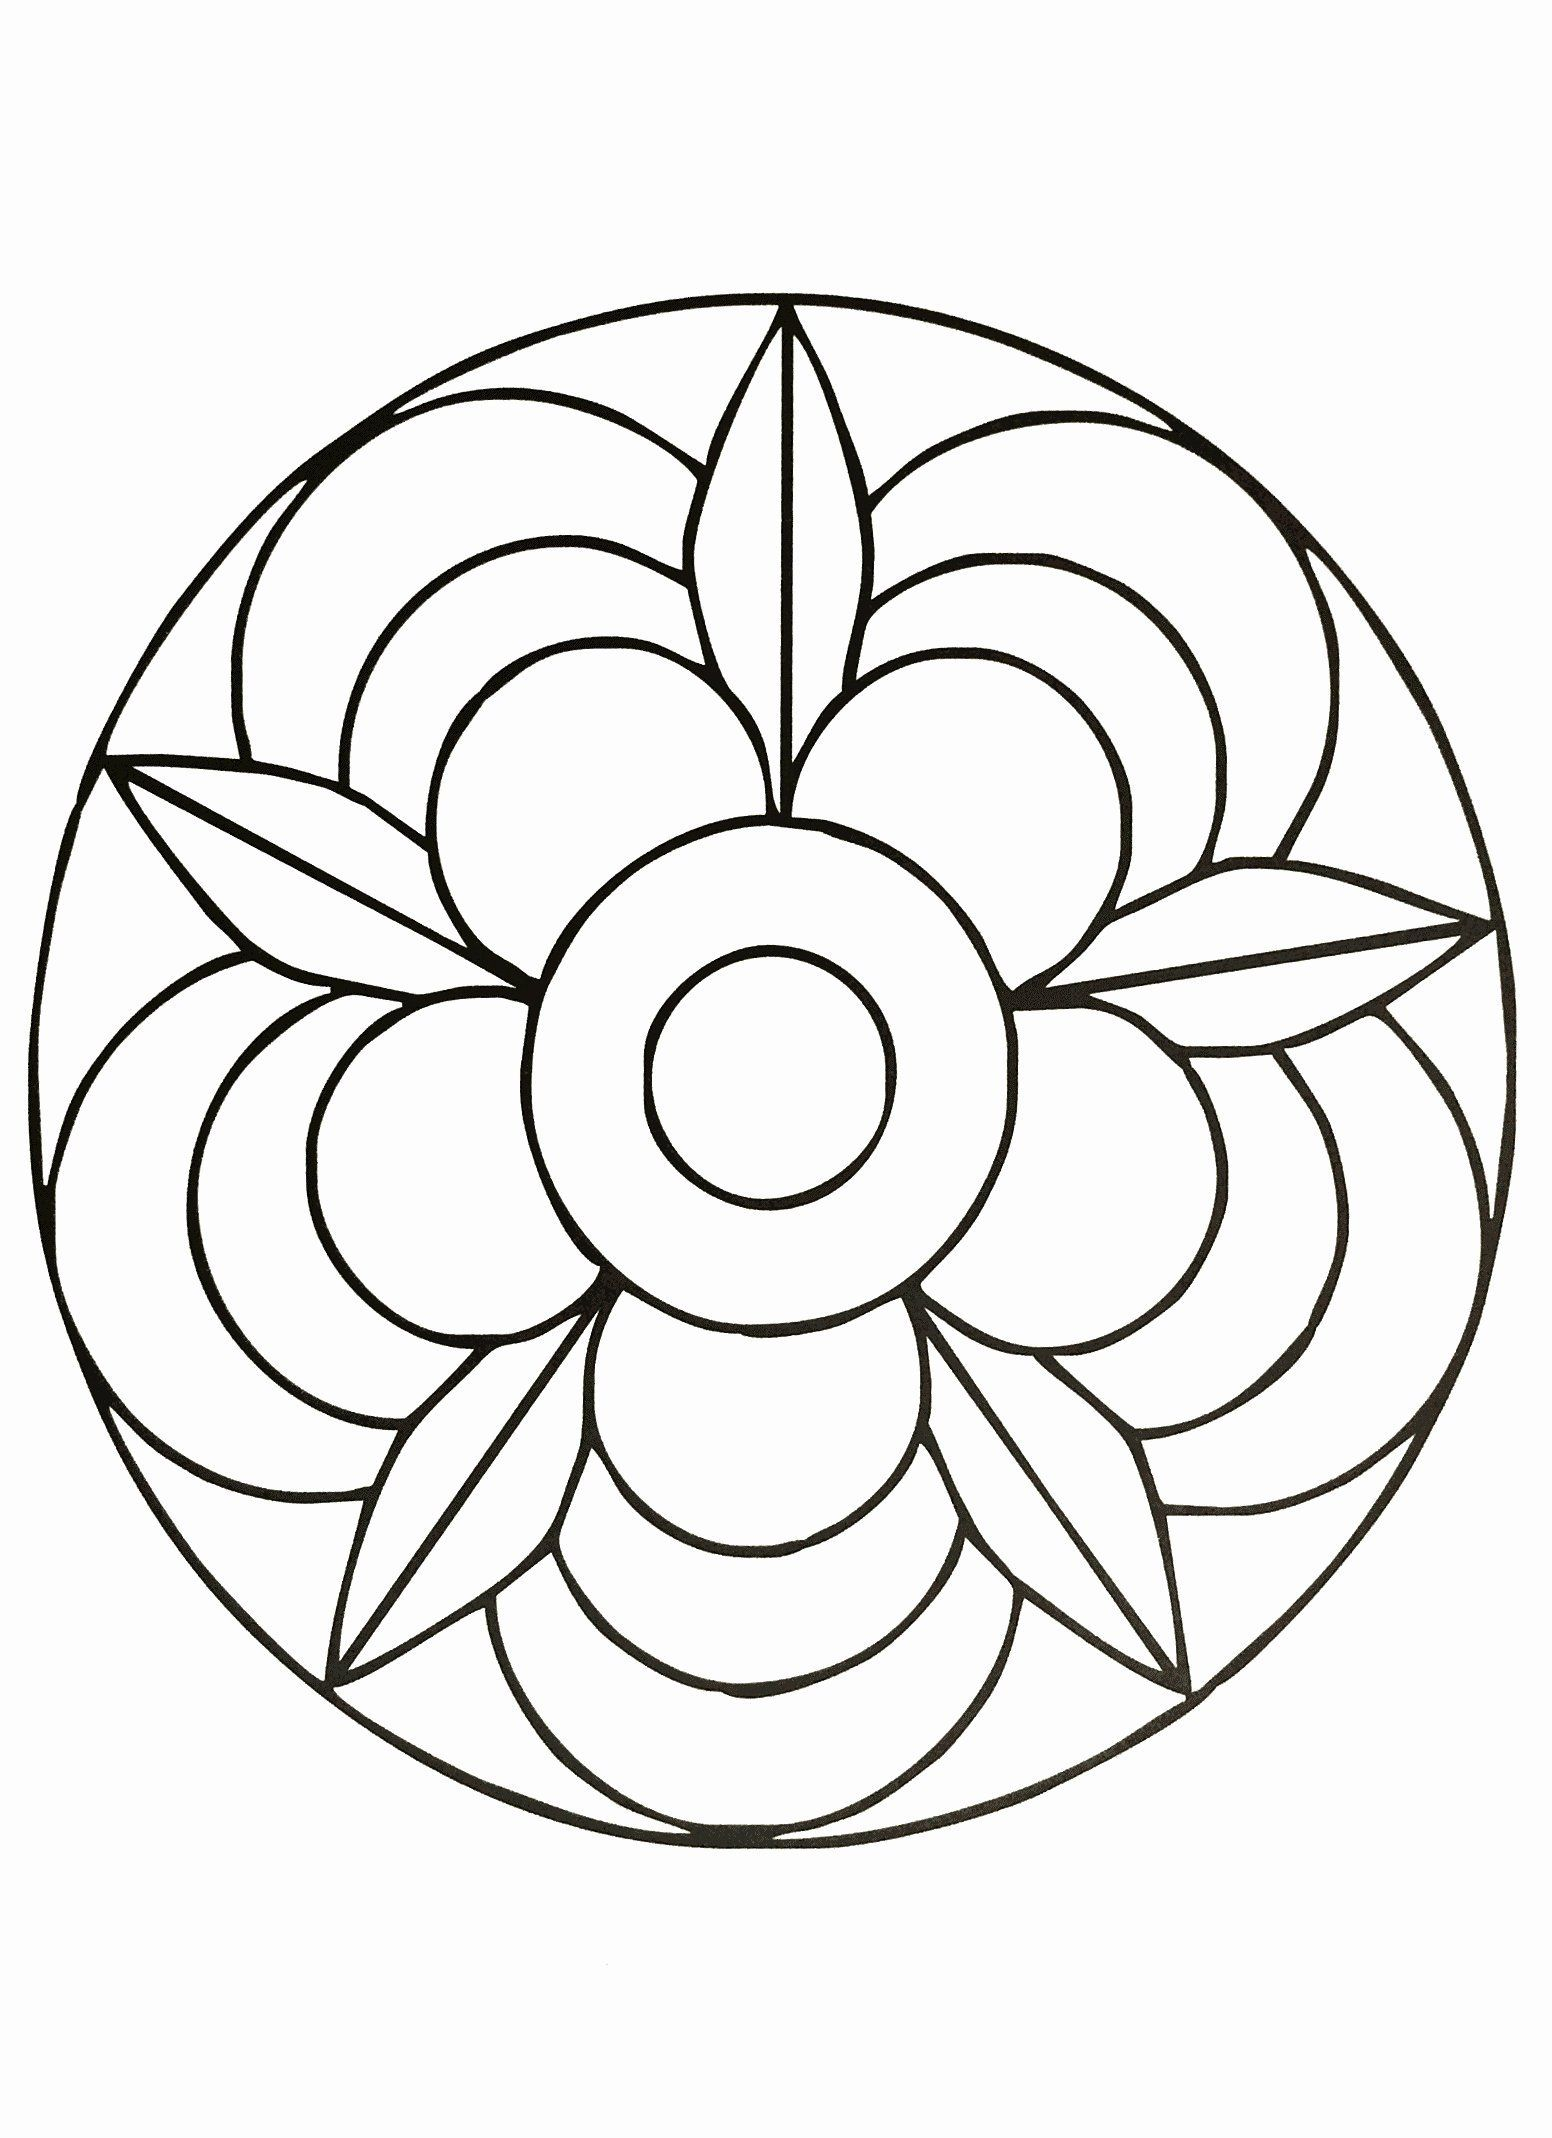 Simple Flower Coloring Book Pdf Elegant Coloring Pages Coloring